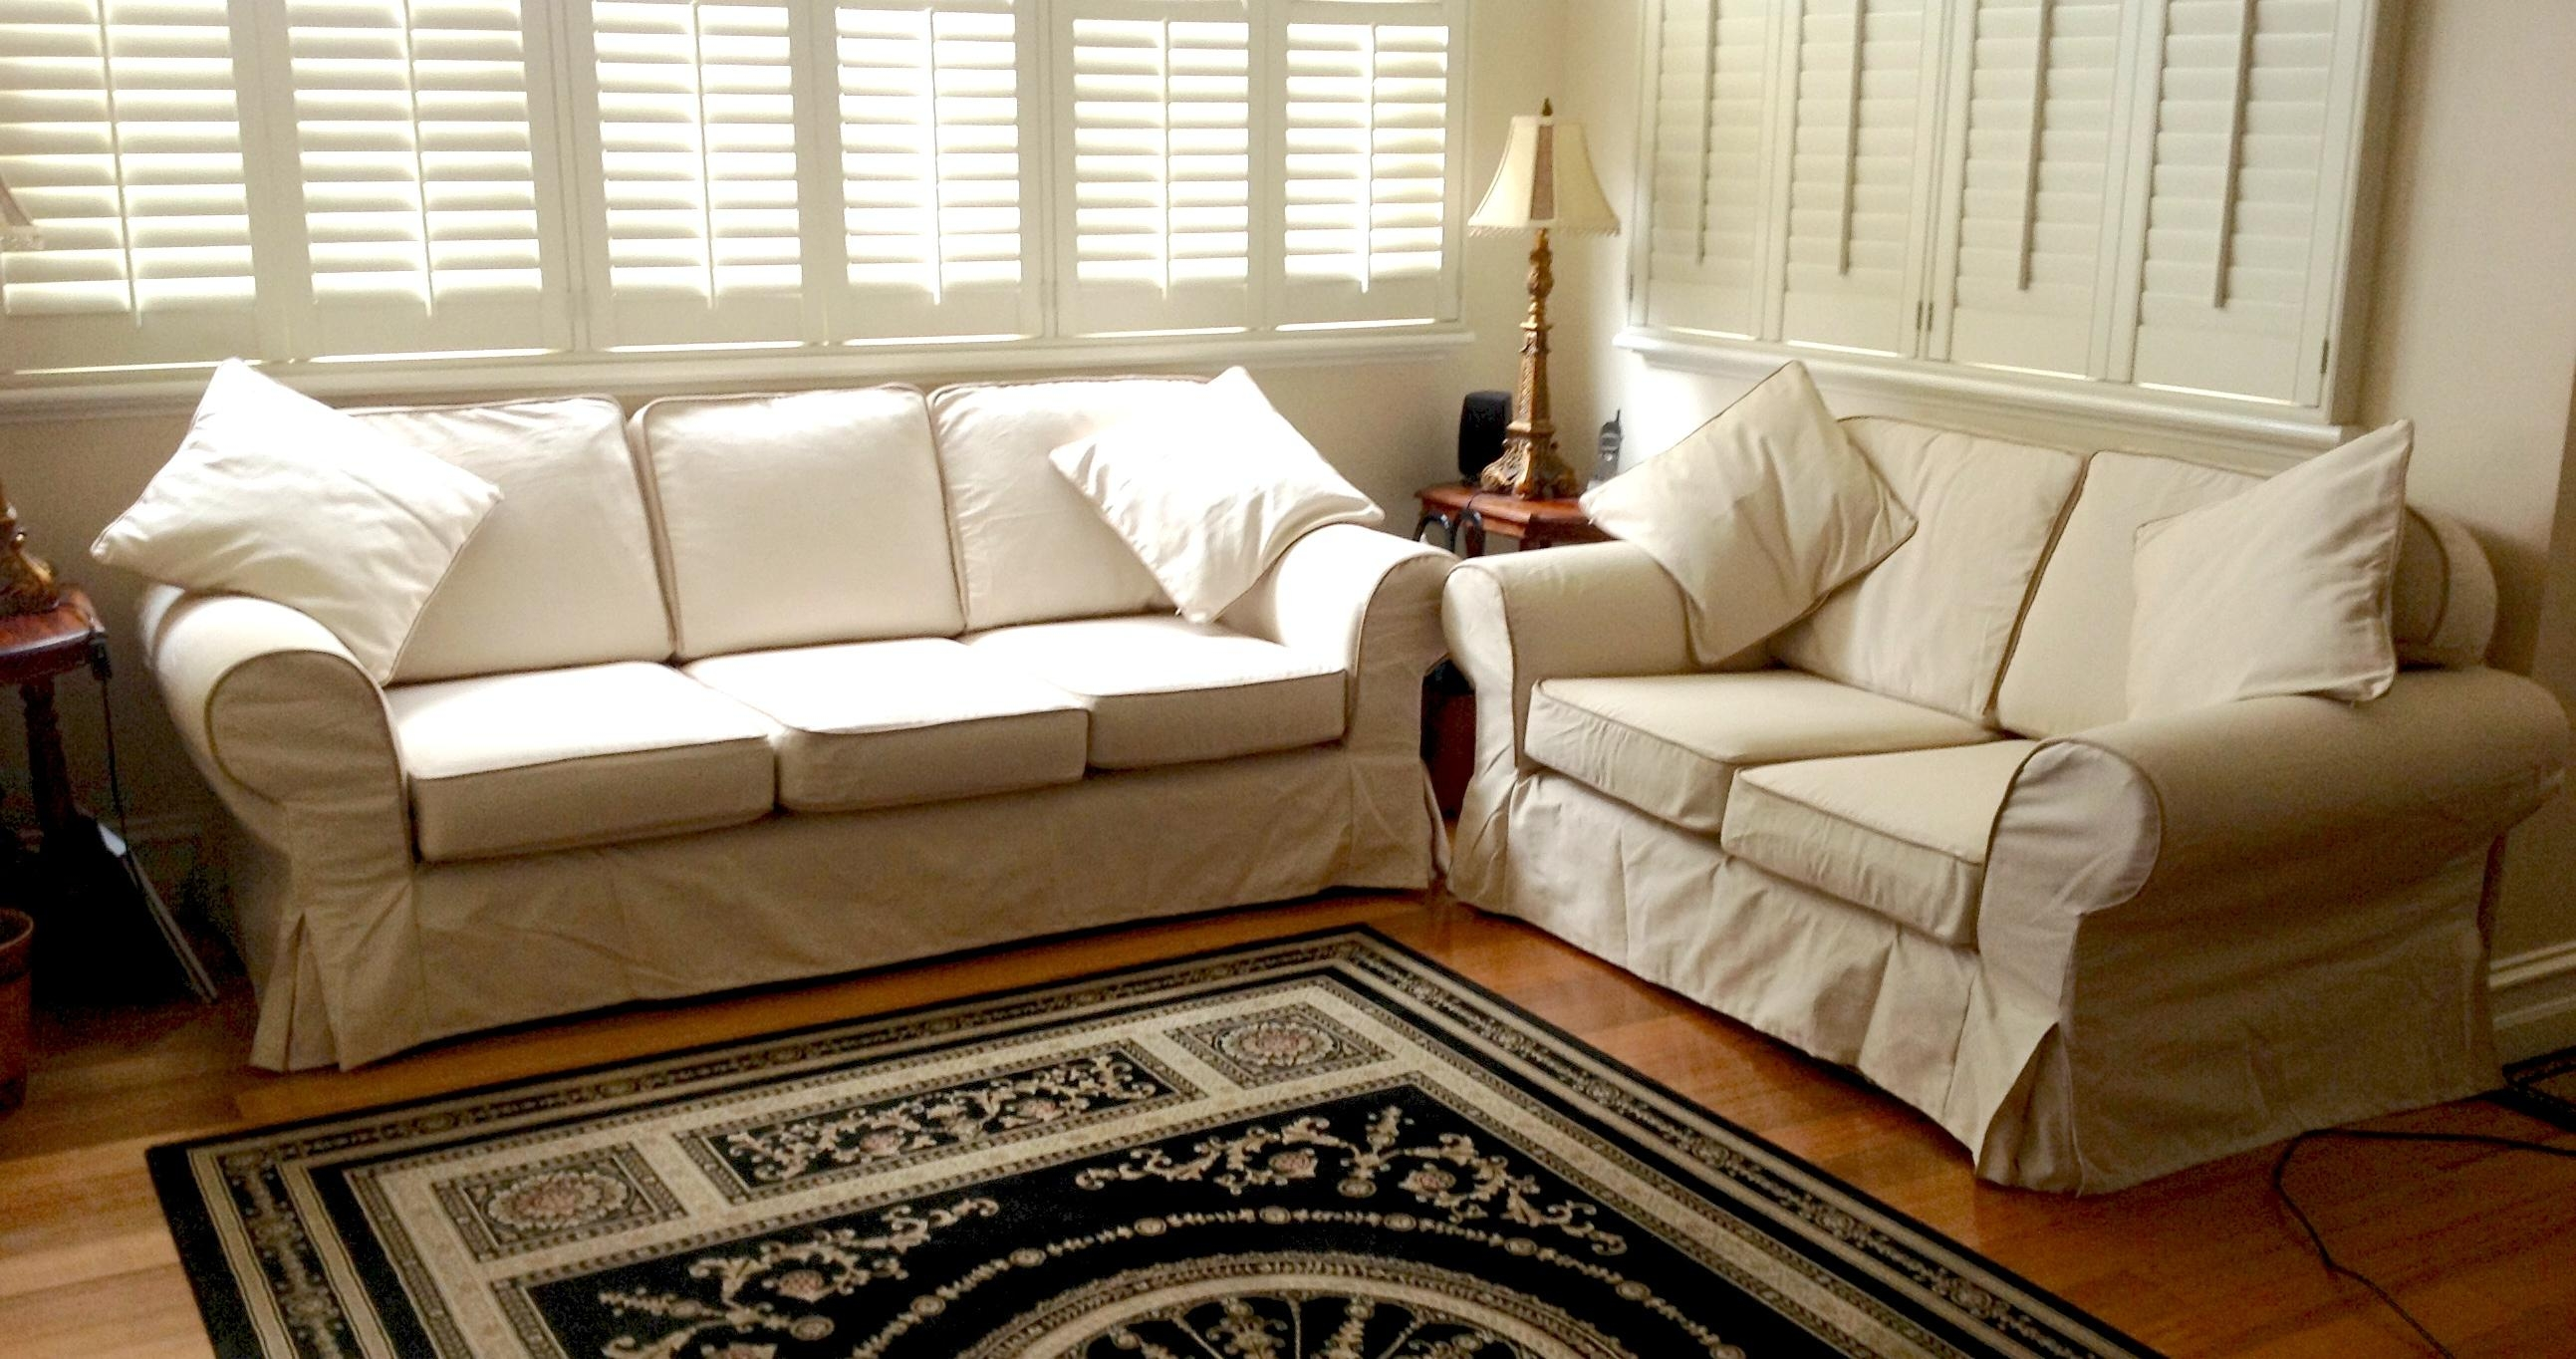 Custom Slipcovers And Couch Cover For Any Sofa Online For Sofas With Removable Covers (Image 5 of 20)